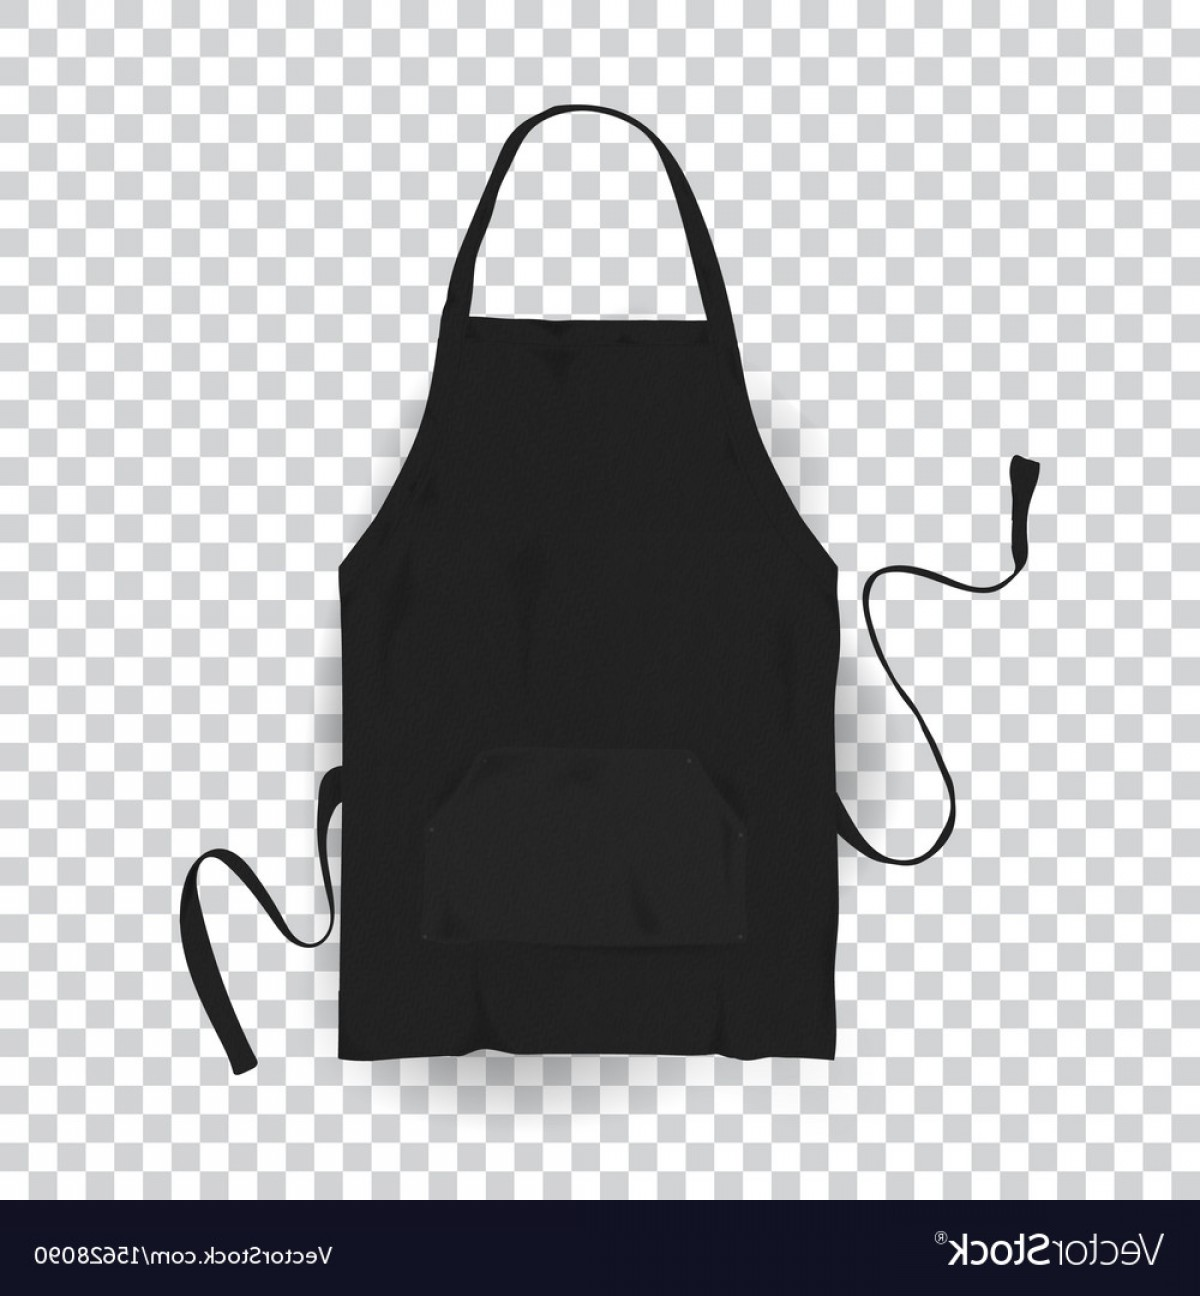 Apron Vector: Realistic Black Kitchen Apron Vector